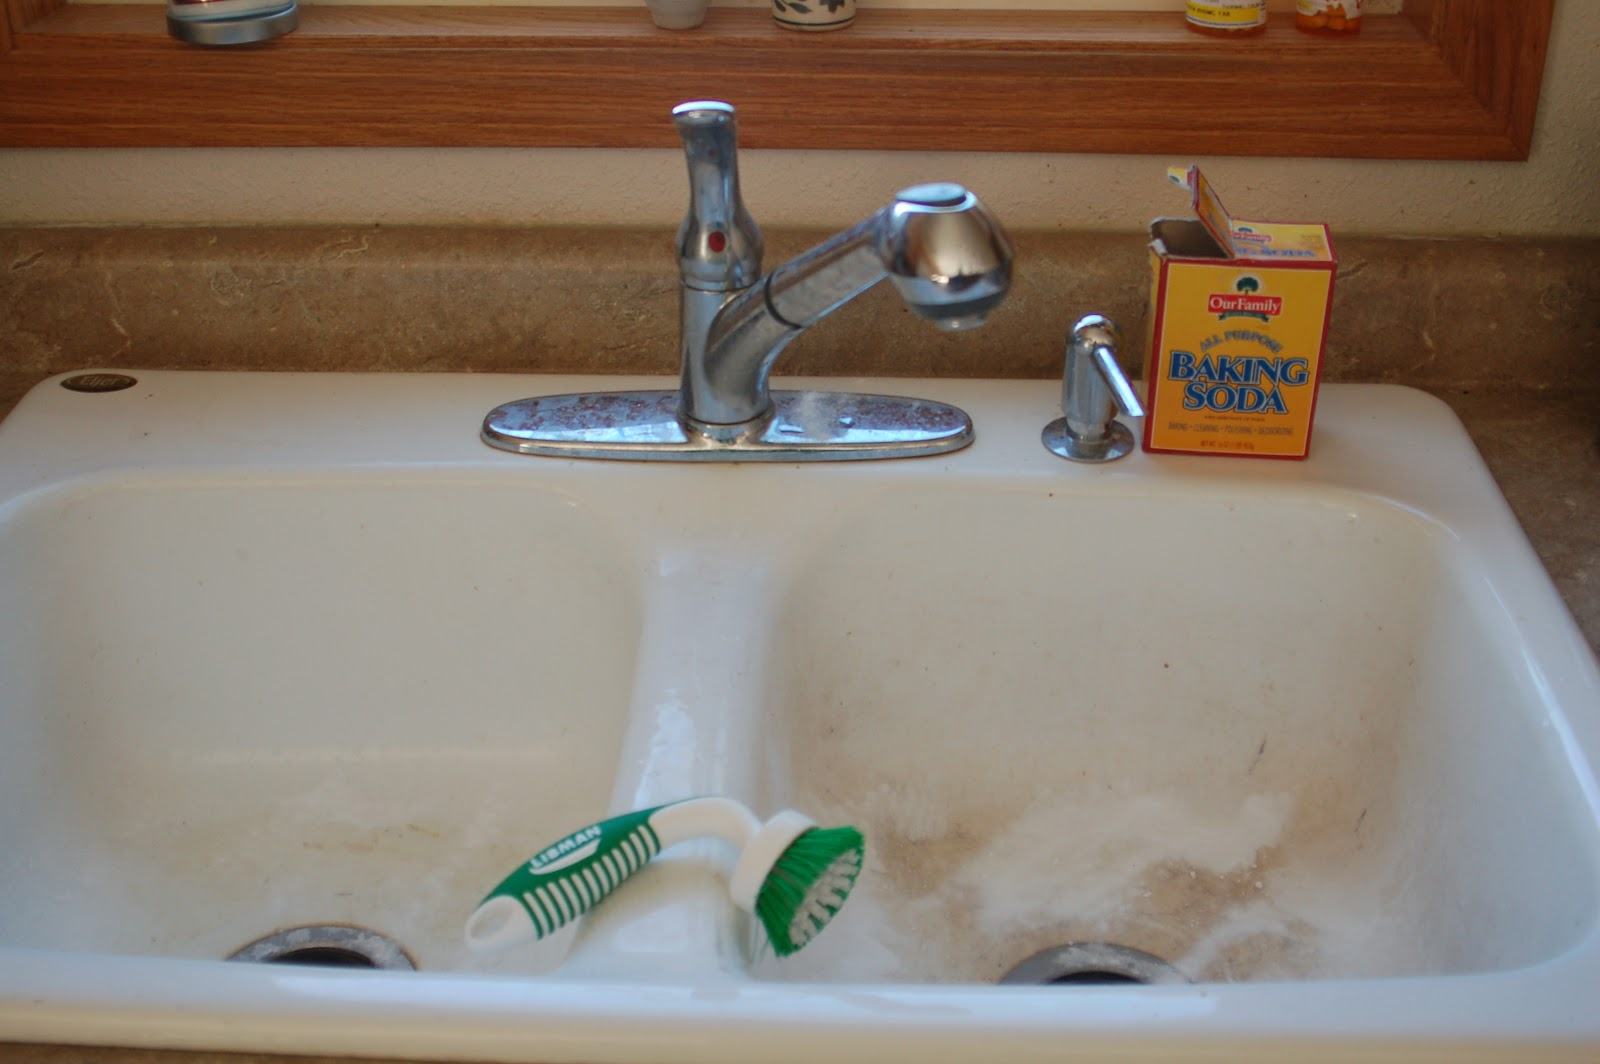 attractive How To Clean Porcelain Kitchen Sink #9: How to Clean Porcelain Sinks without Bleach